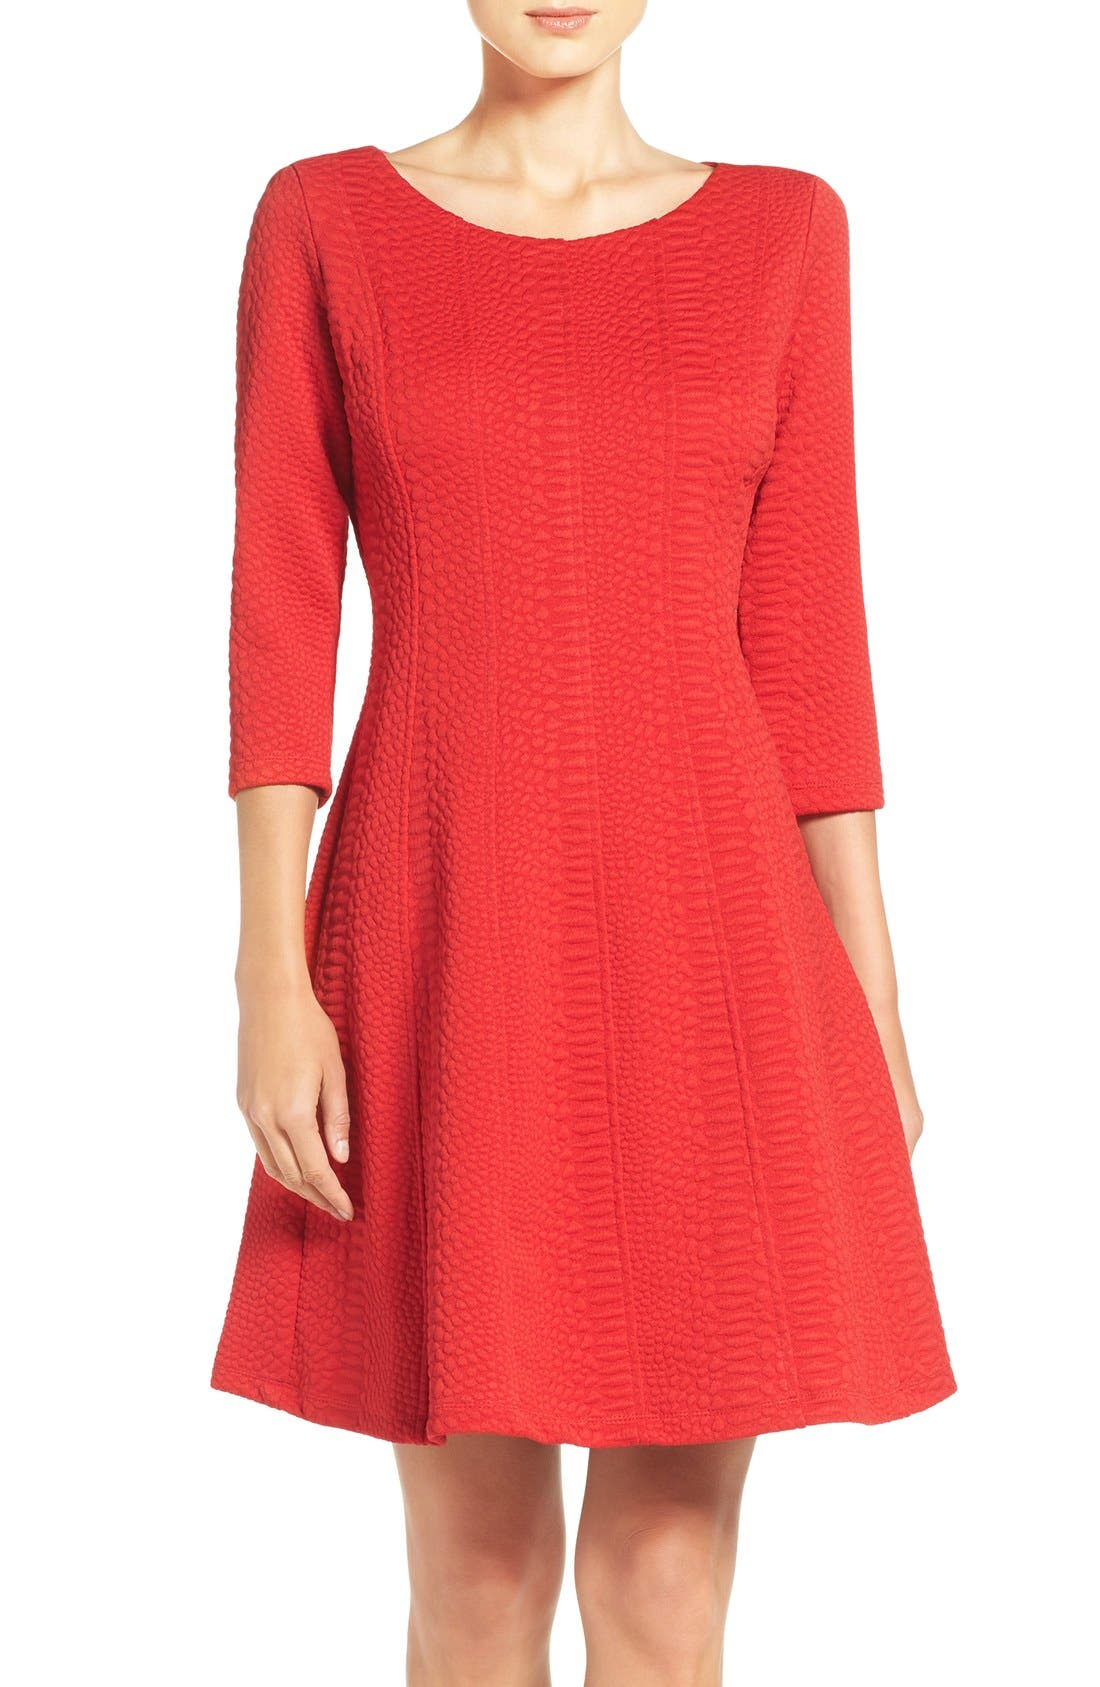 Jacquard Knit Fit & Flare Dress,                         Main,                         color, 628